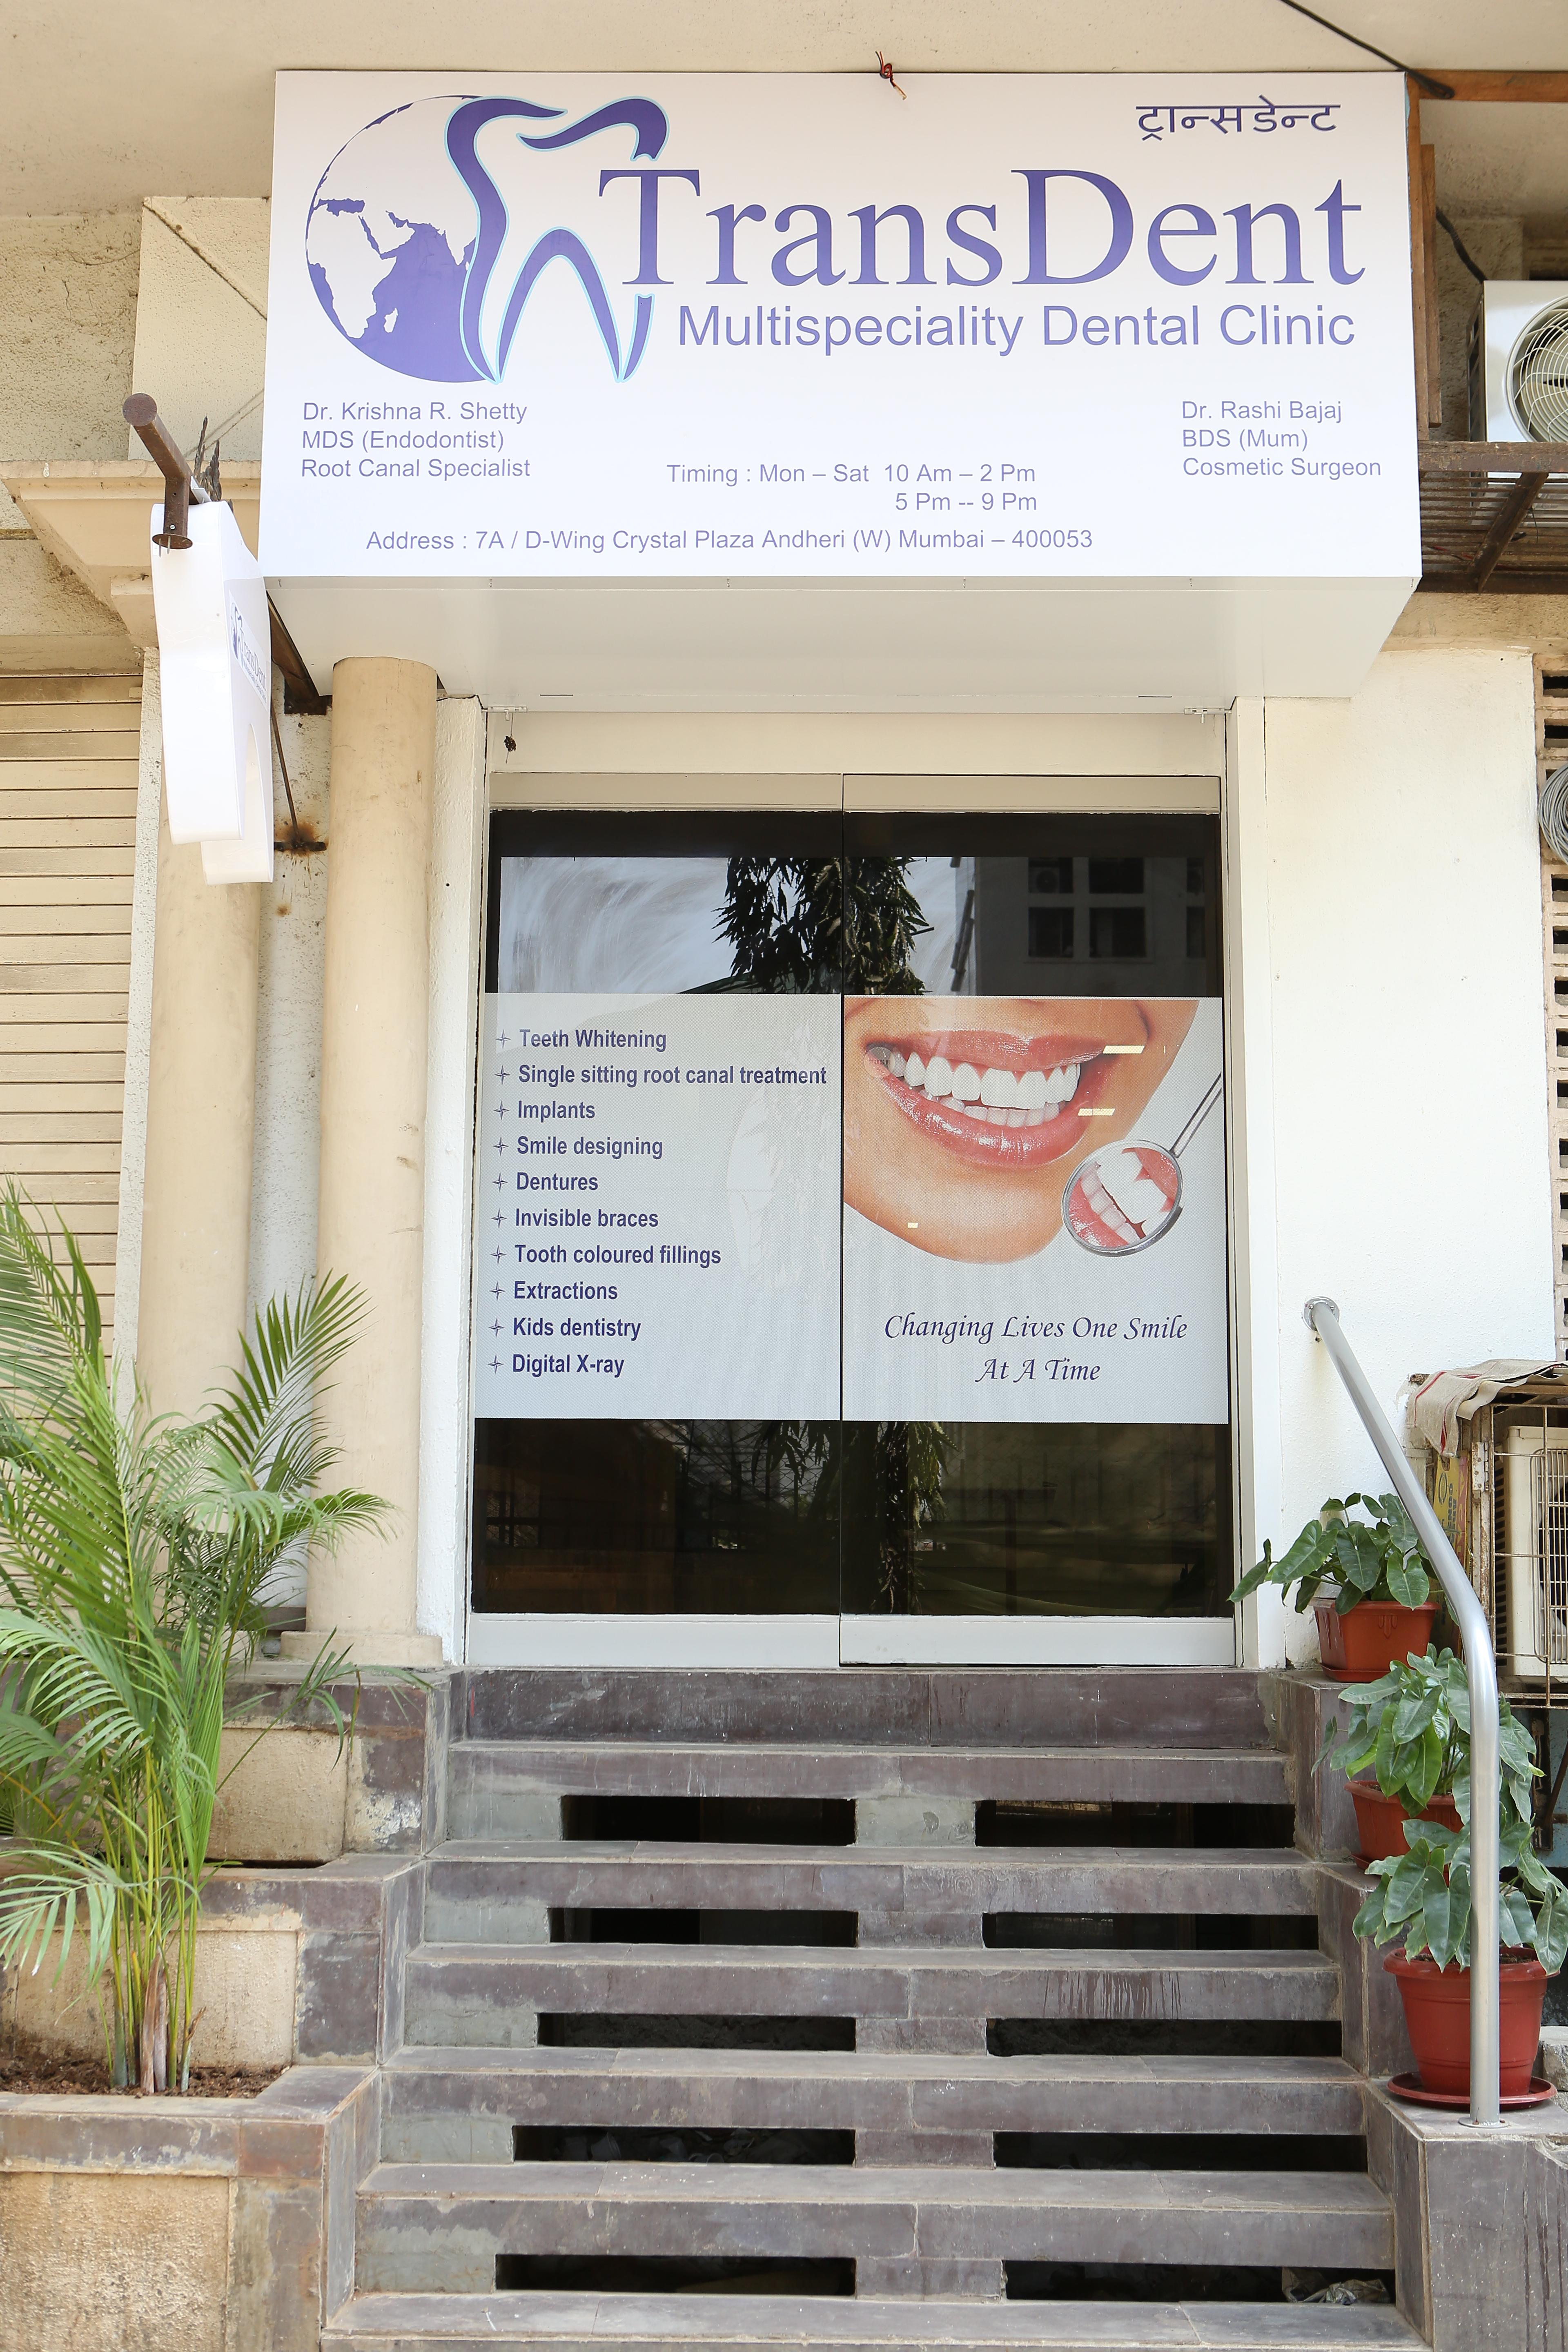 Trans Dent Multispeciality Dental Clinic